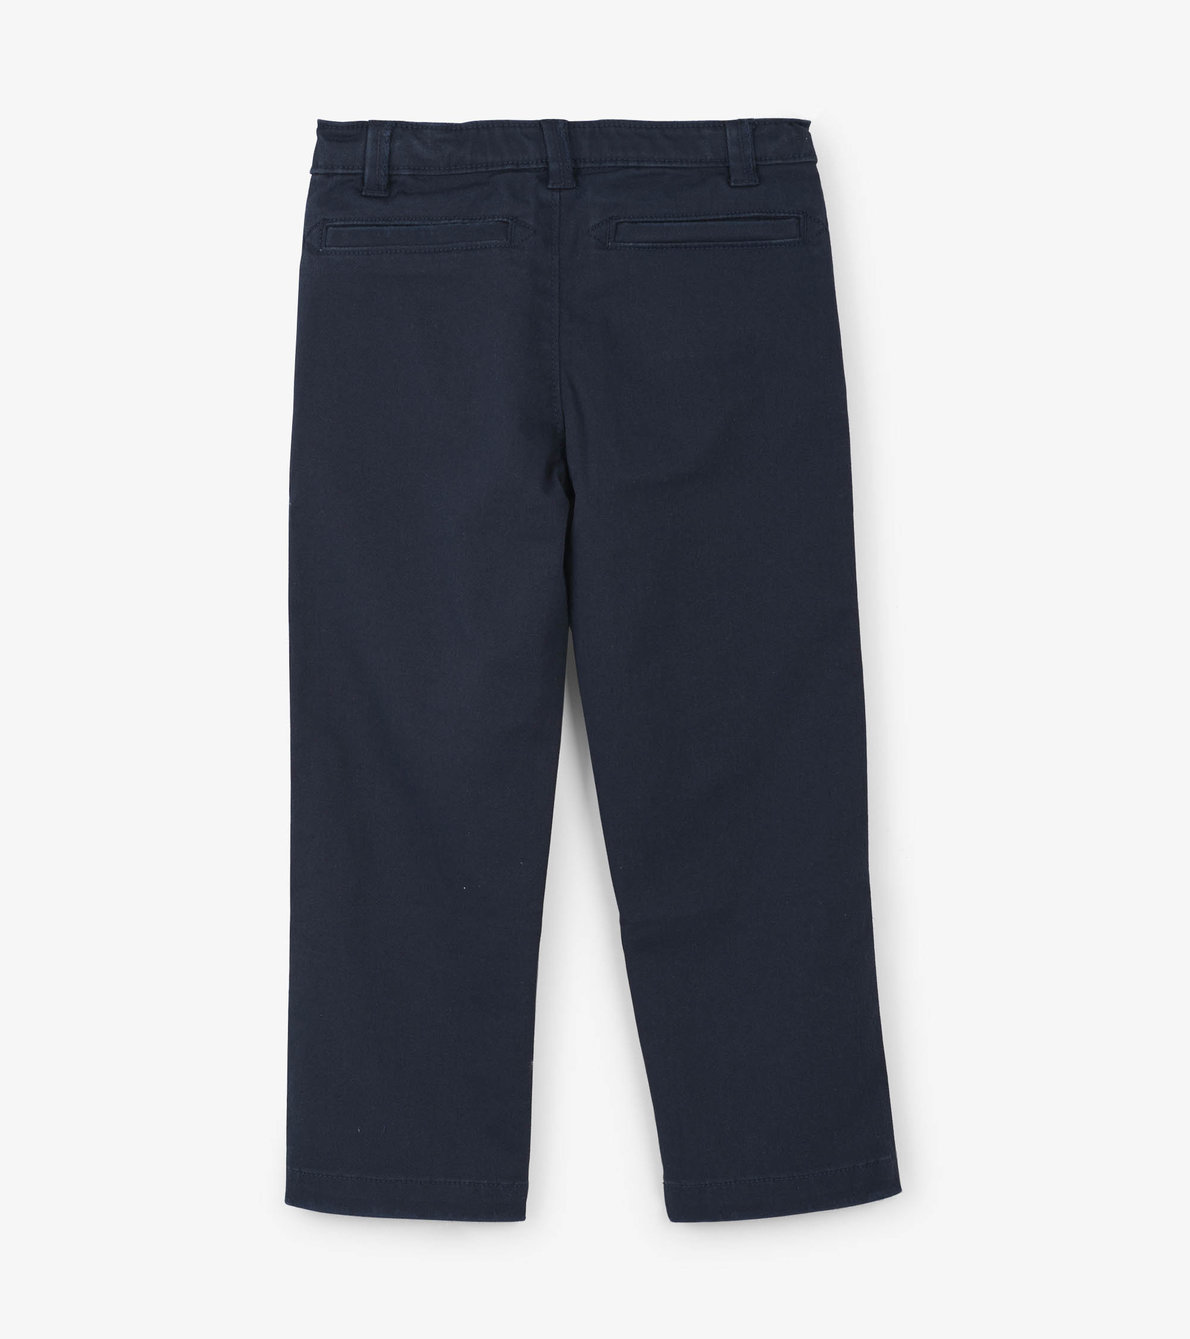 View larger image of Navy Stretch Twill Pants